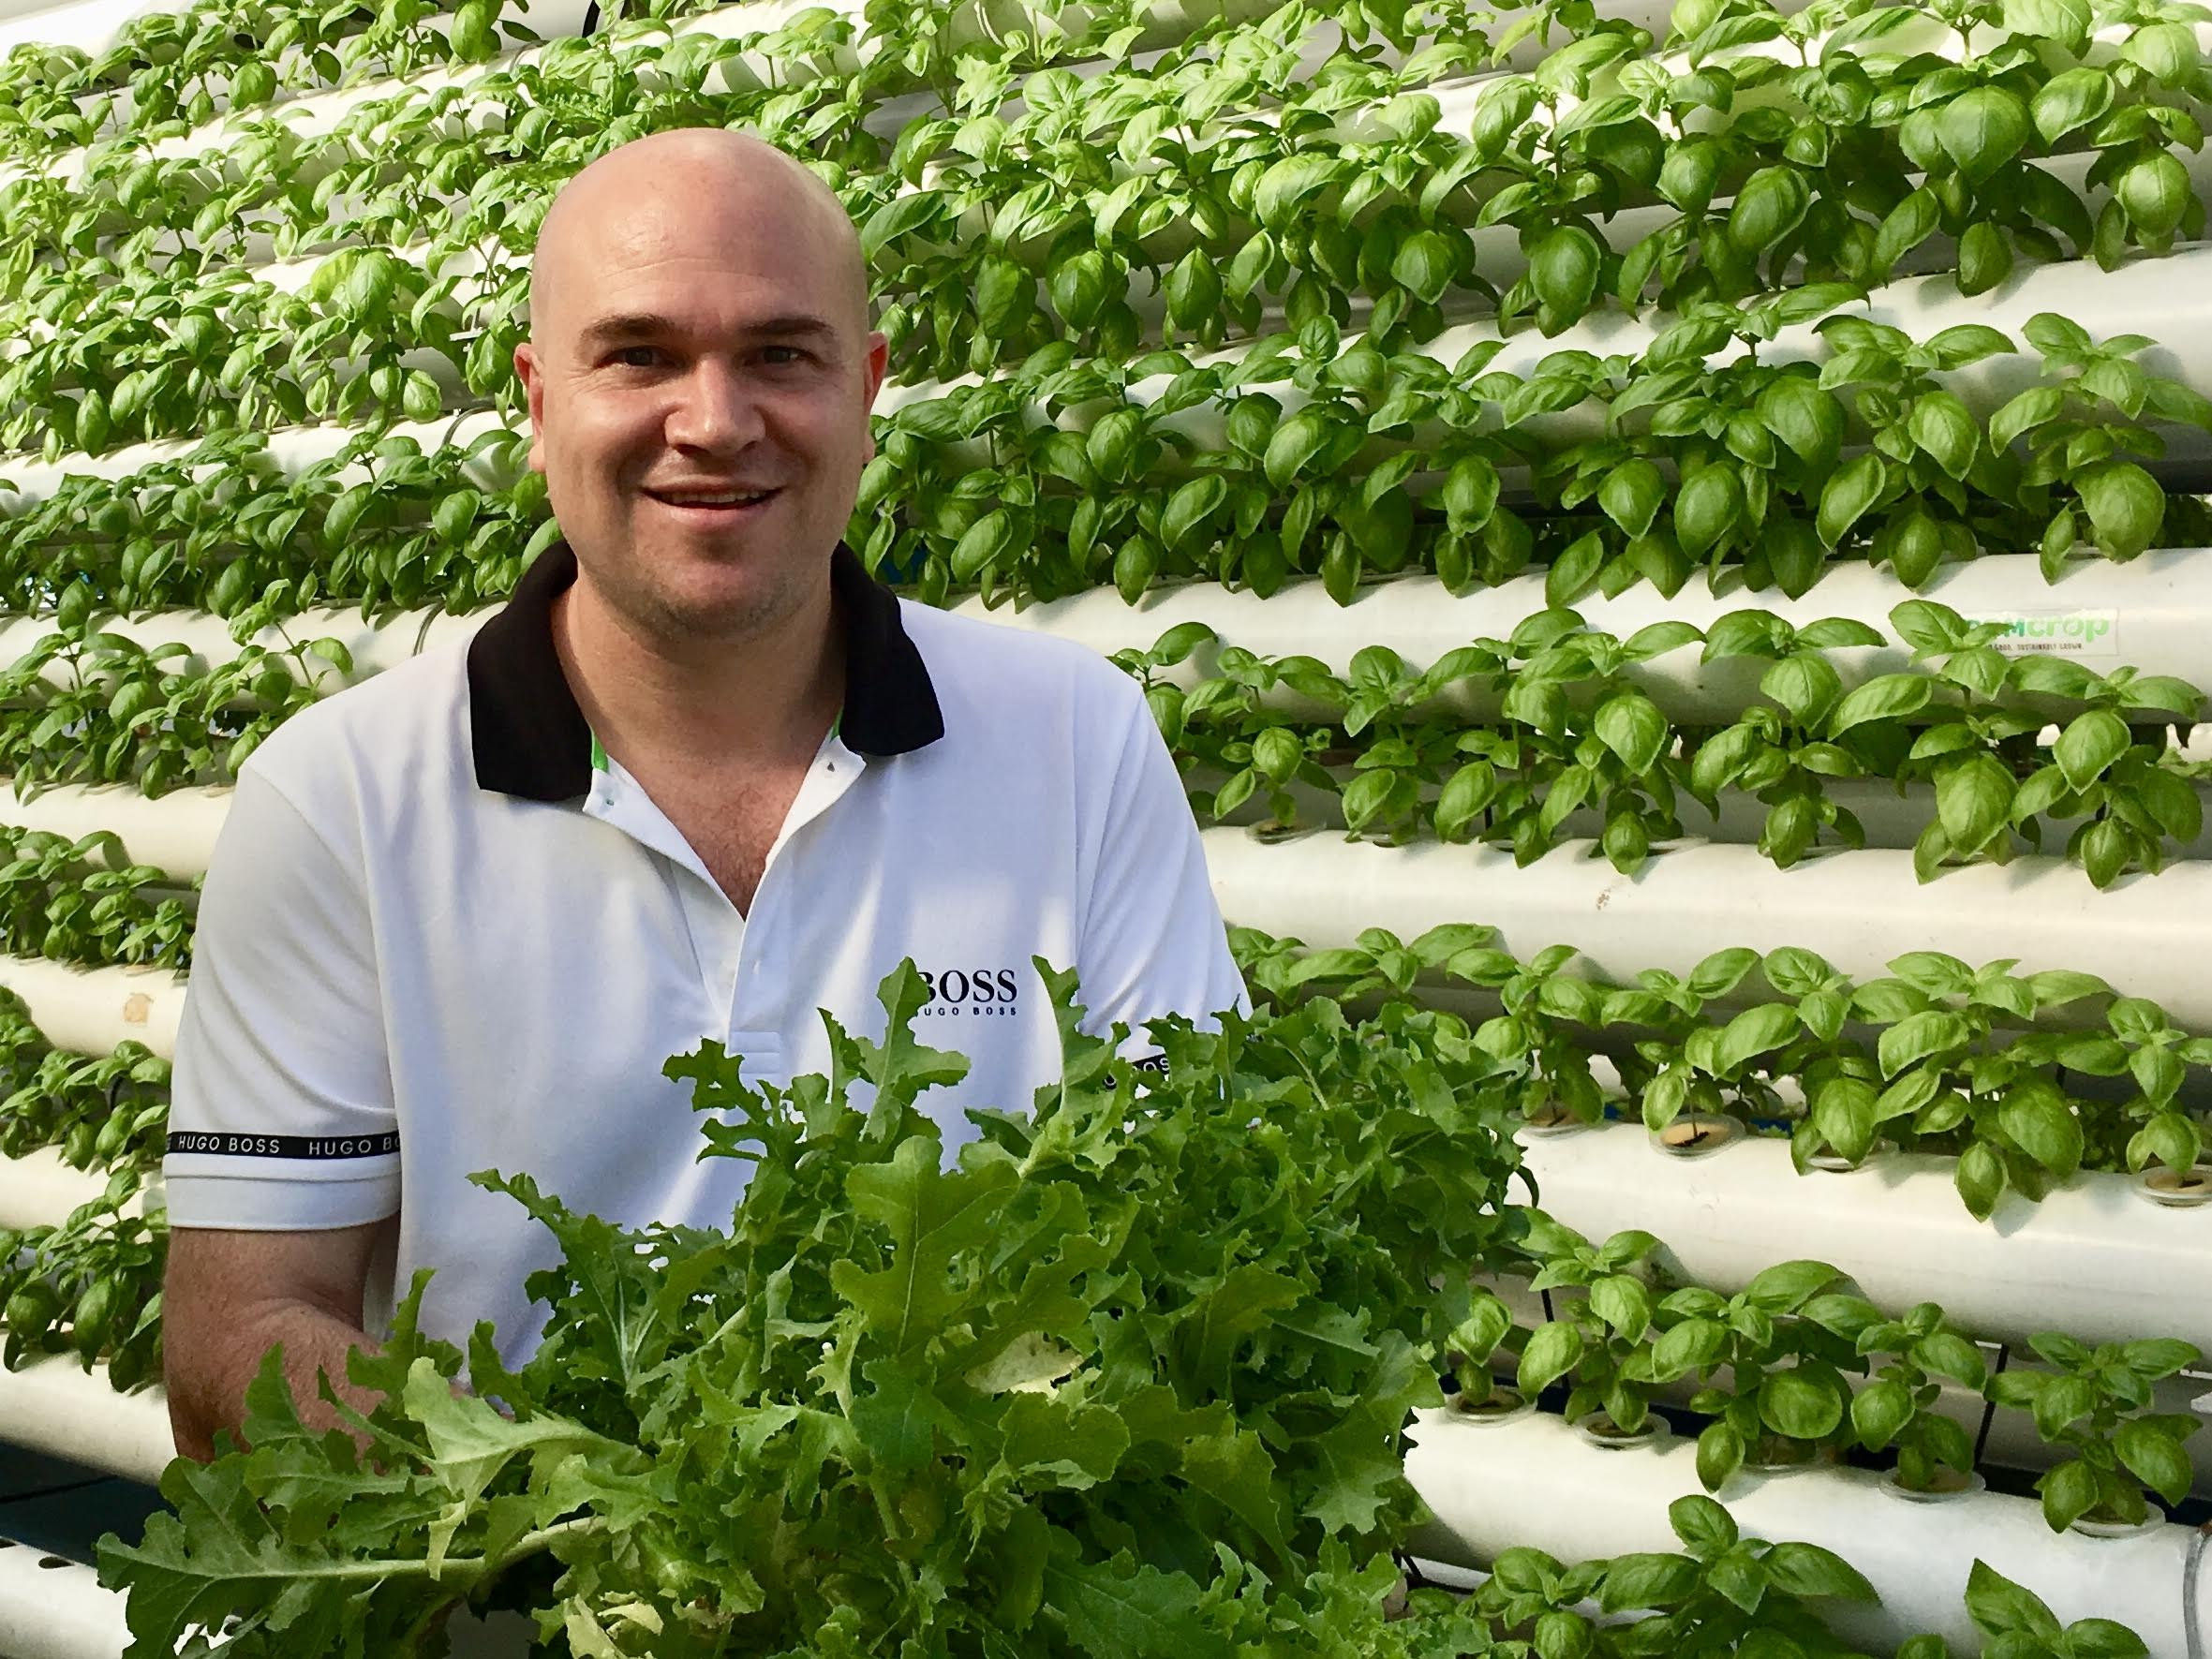 ComCrop's CEO Peter Barber